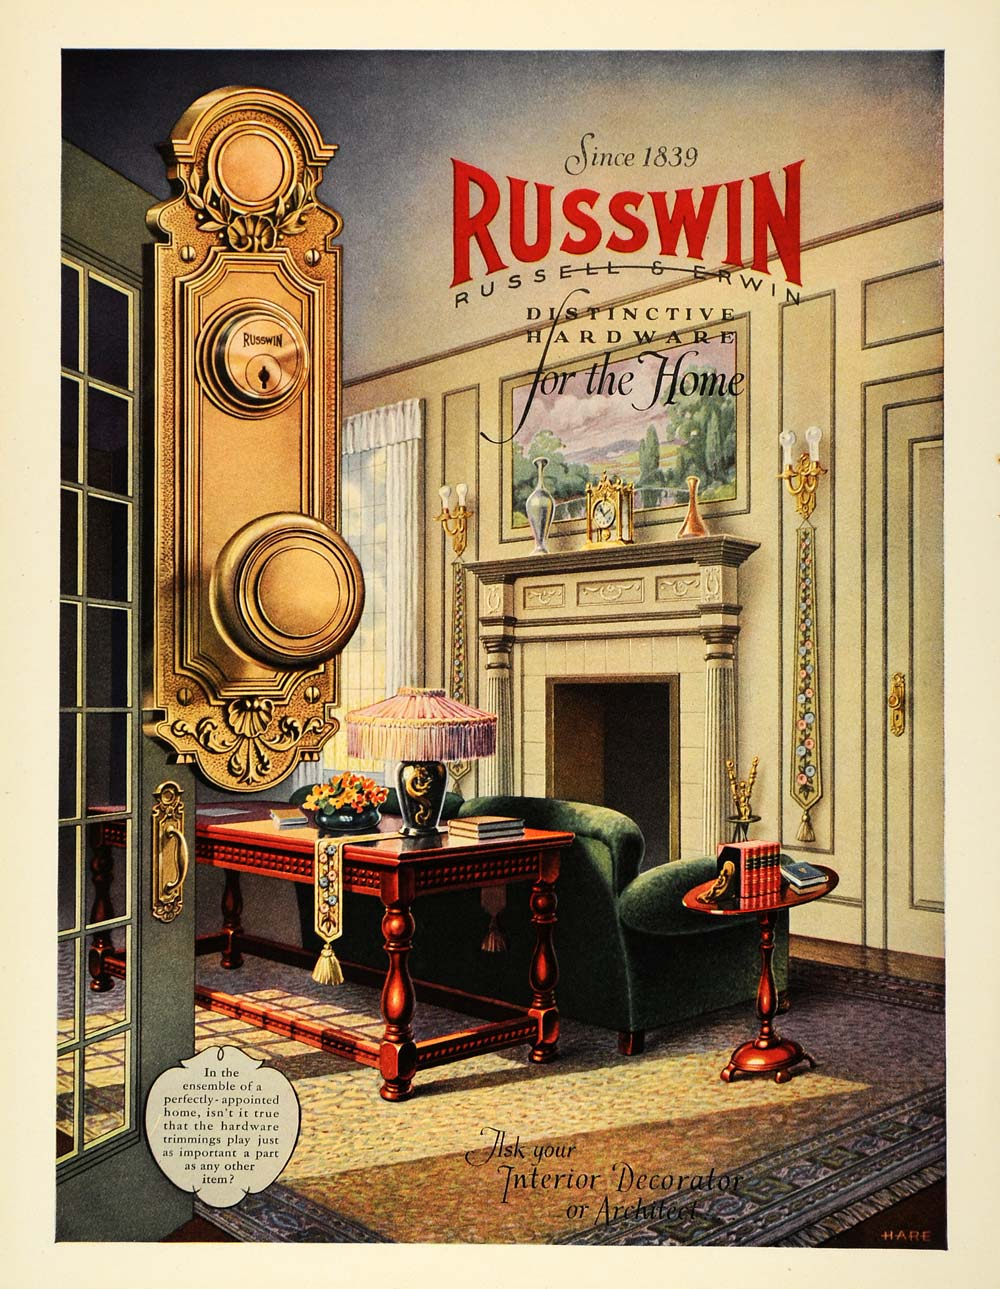 1927 Ad Russwin Hardware Door Knob Interior Decor Hare - ORIGINAL GHB1